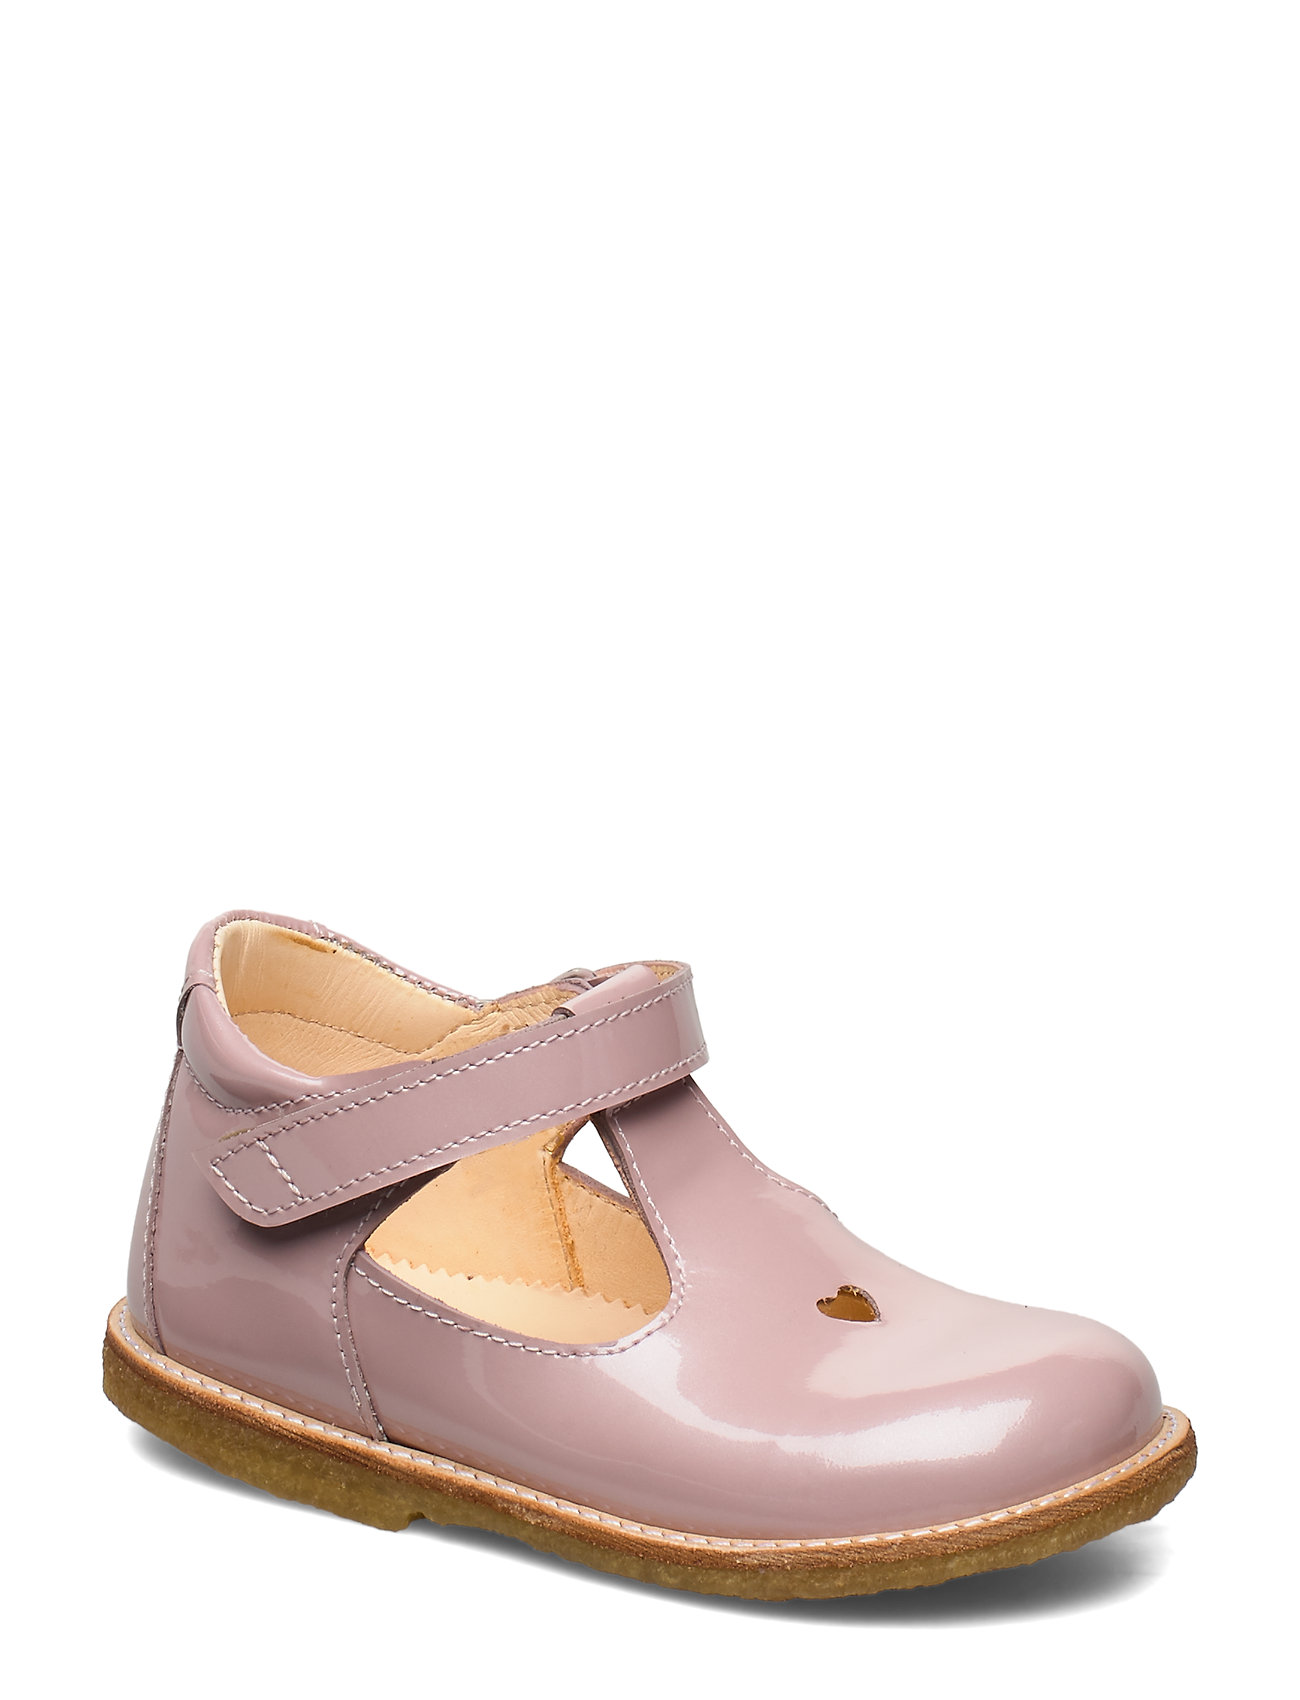 Image of ***T - Bar Shoe*** Shoes Summer Shoes Sandals Lyserød ANGULUS (3322697931)